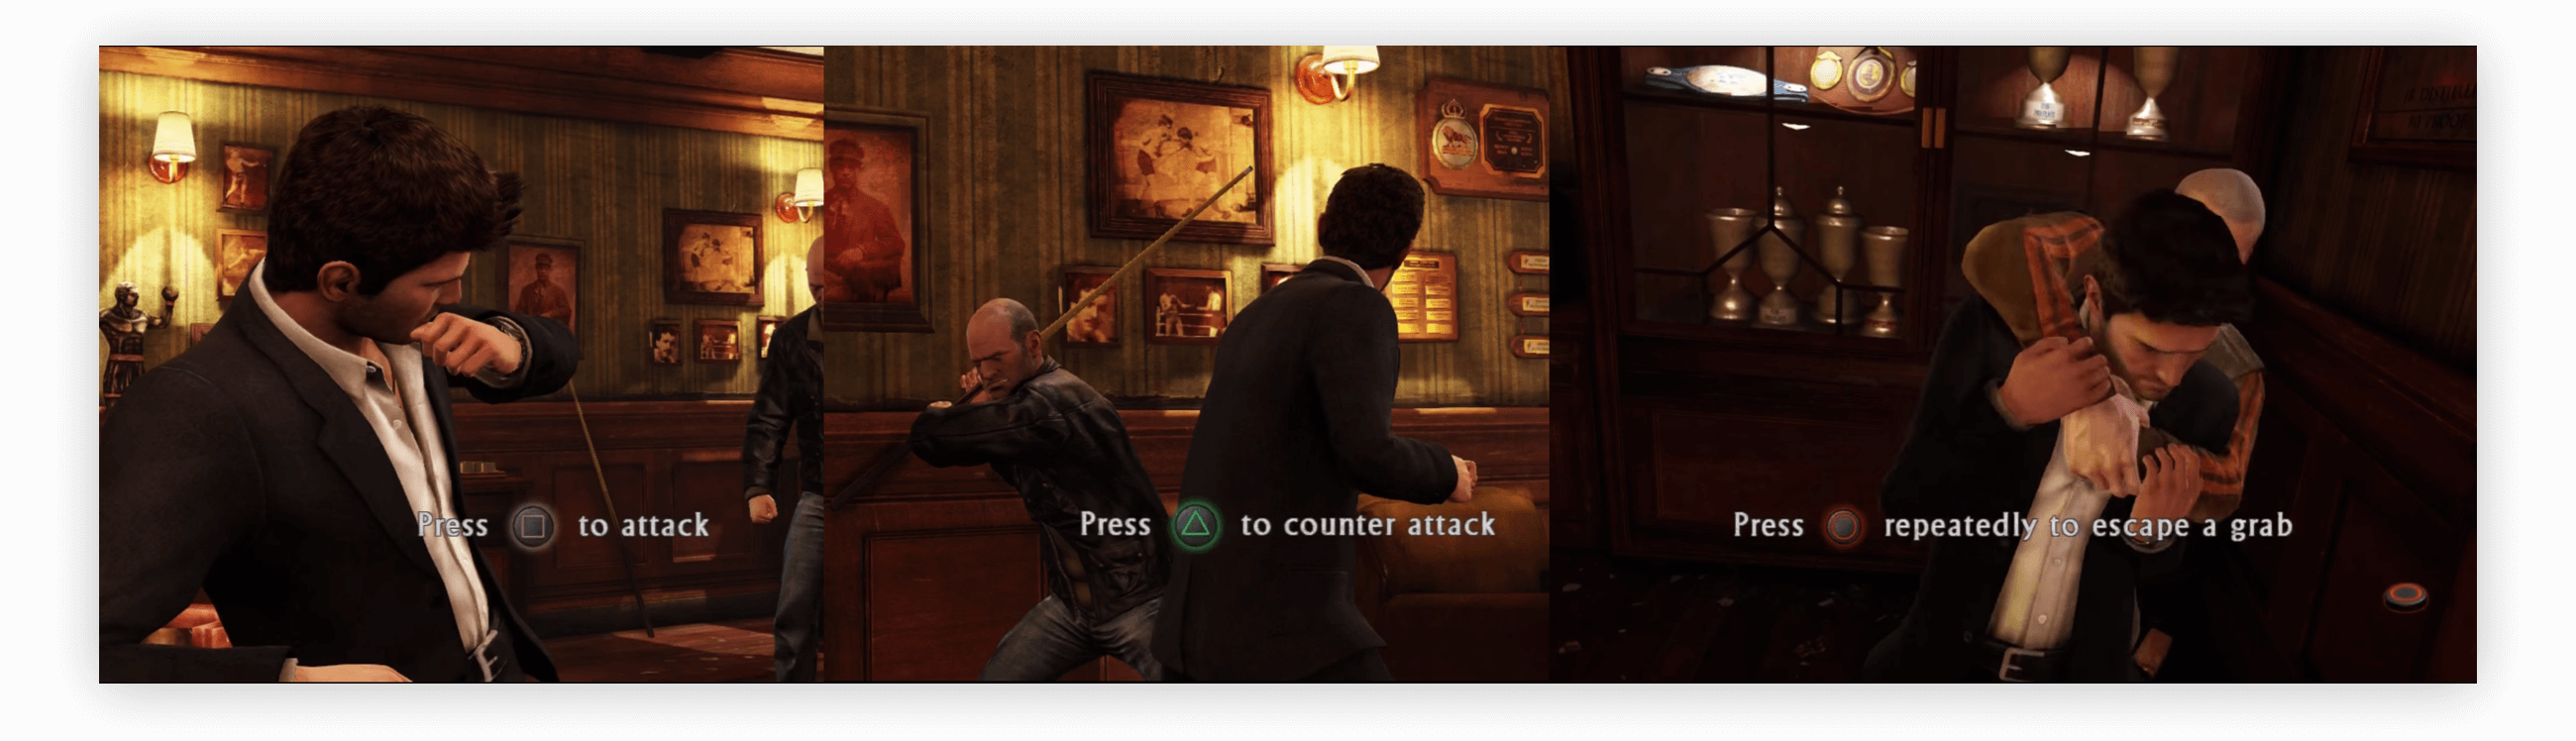 35c395ca0d2 Uncharted 3 by Naughty Dog and Sony Computer Entertainment has got the  onboarding just right  fighting controls are explained the first time you  get into a ...